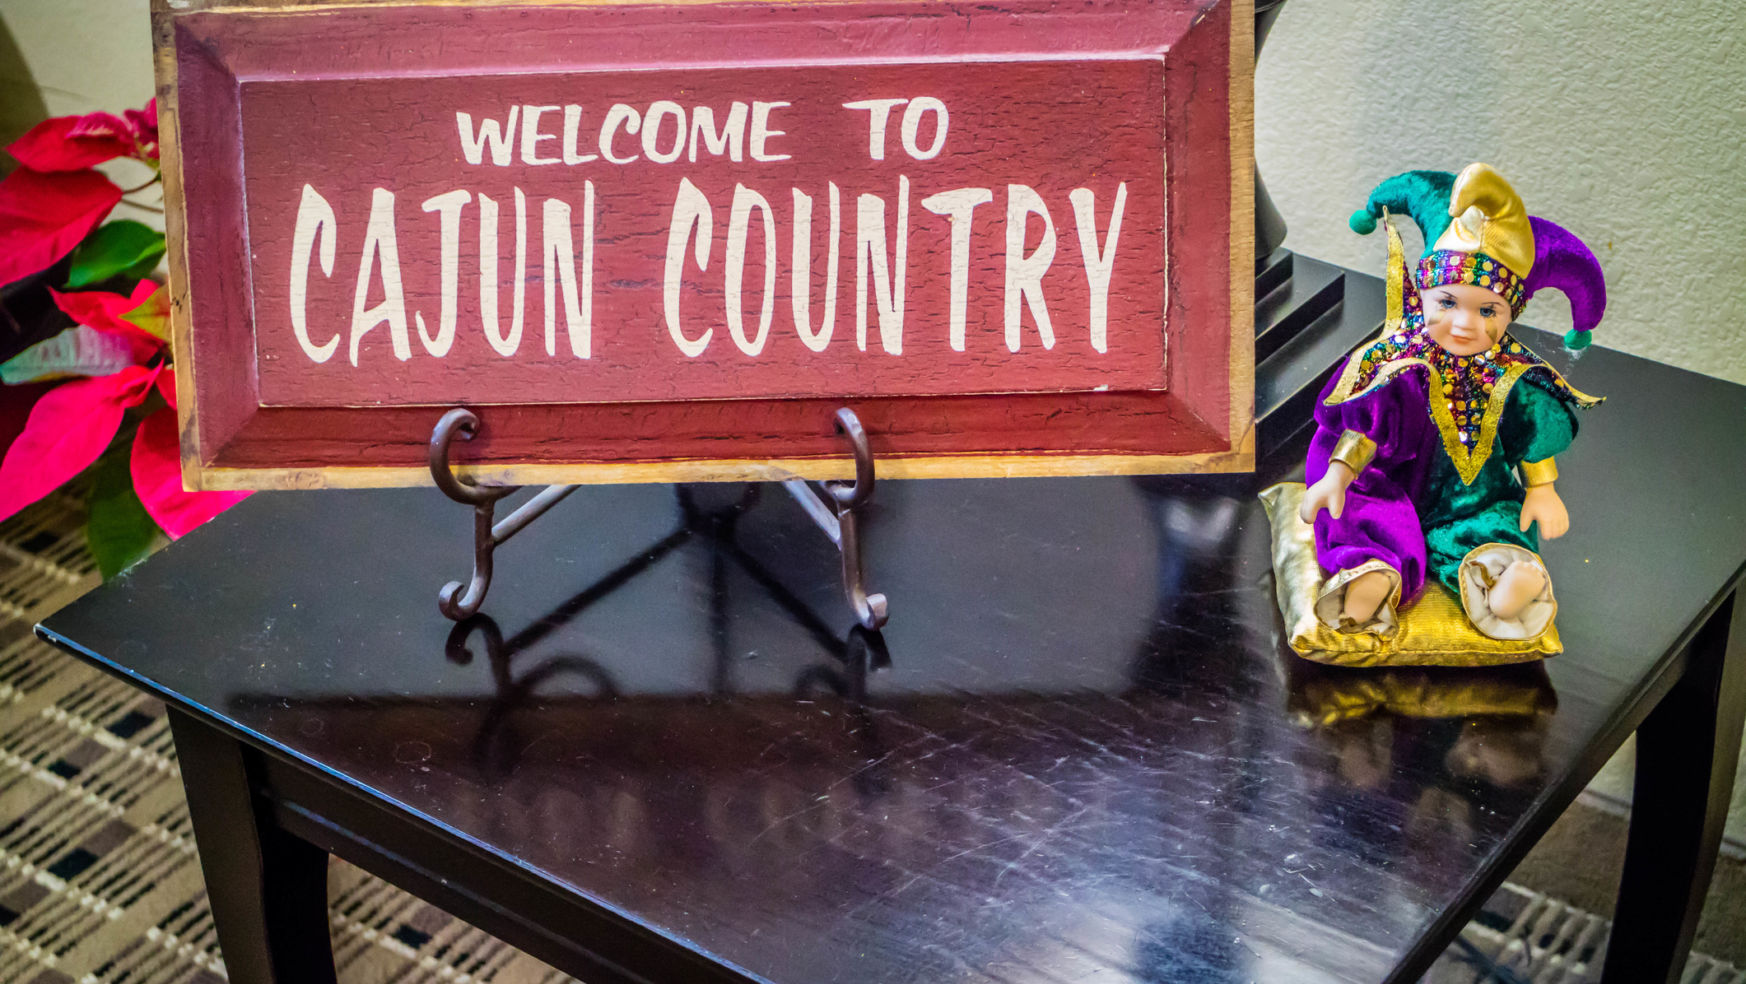 Welcome to cajun country sign